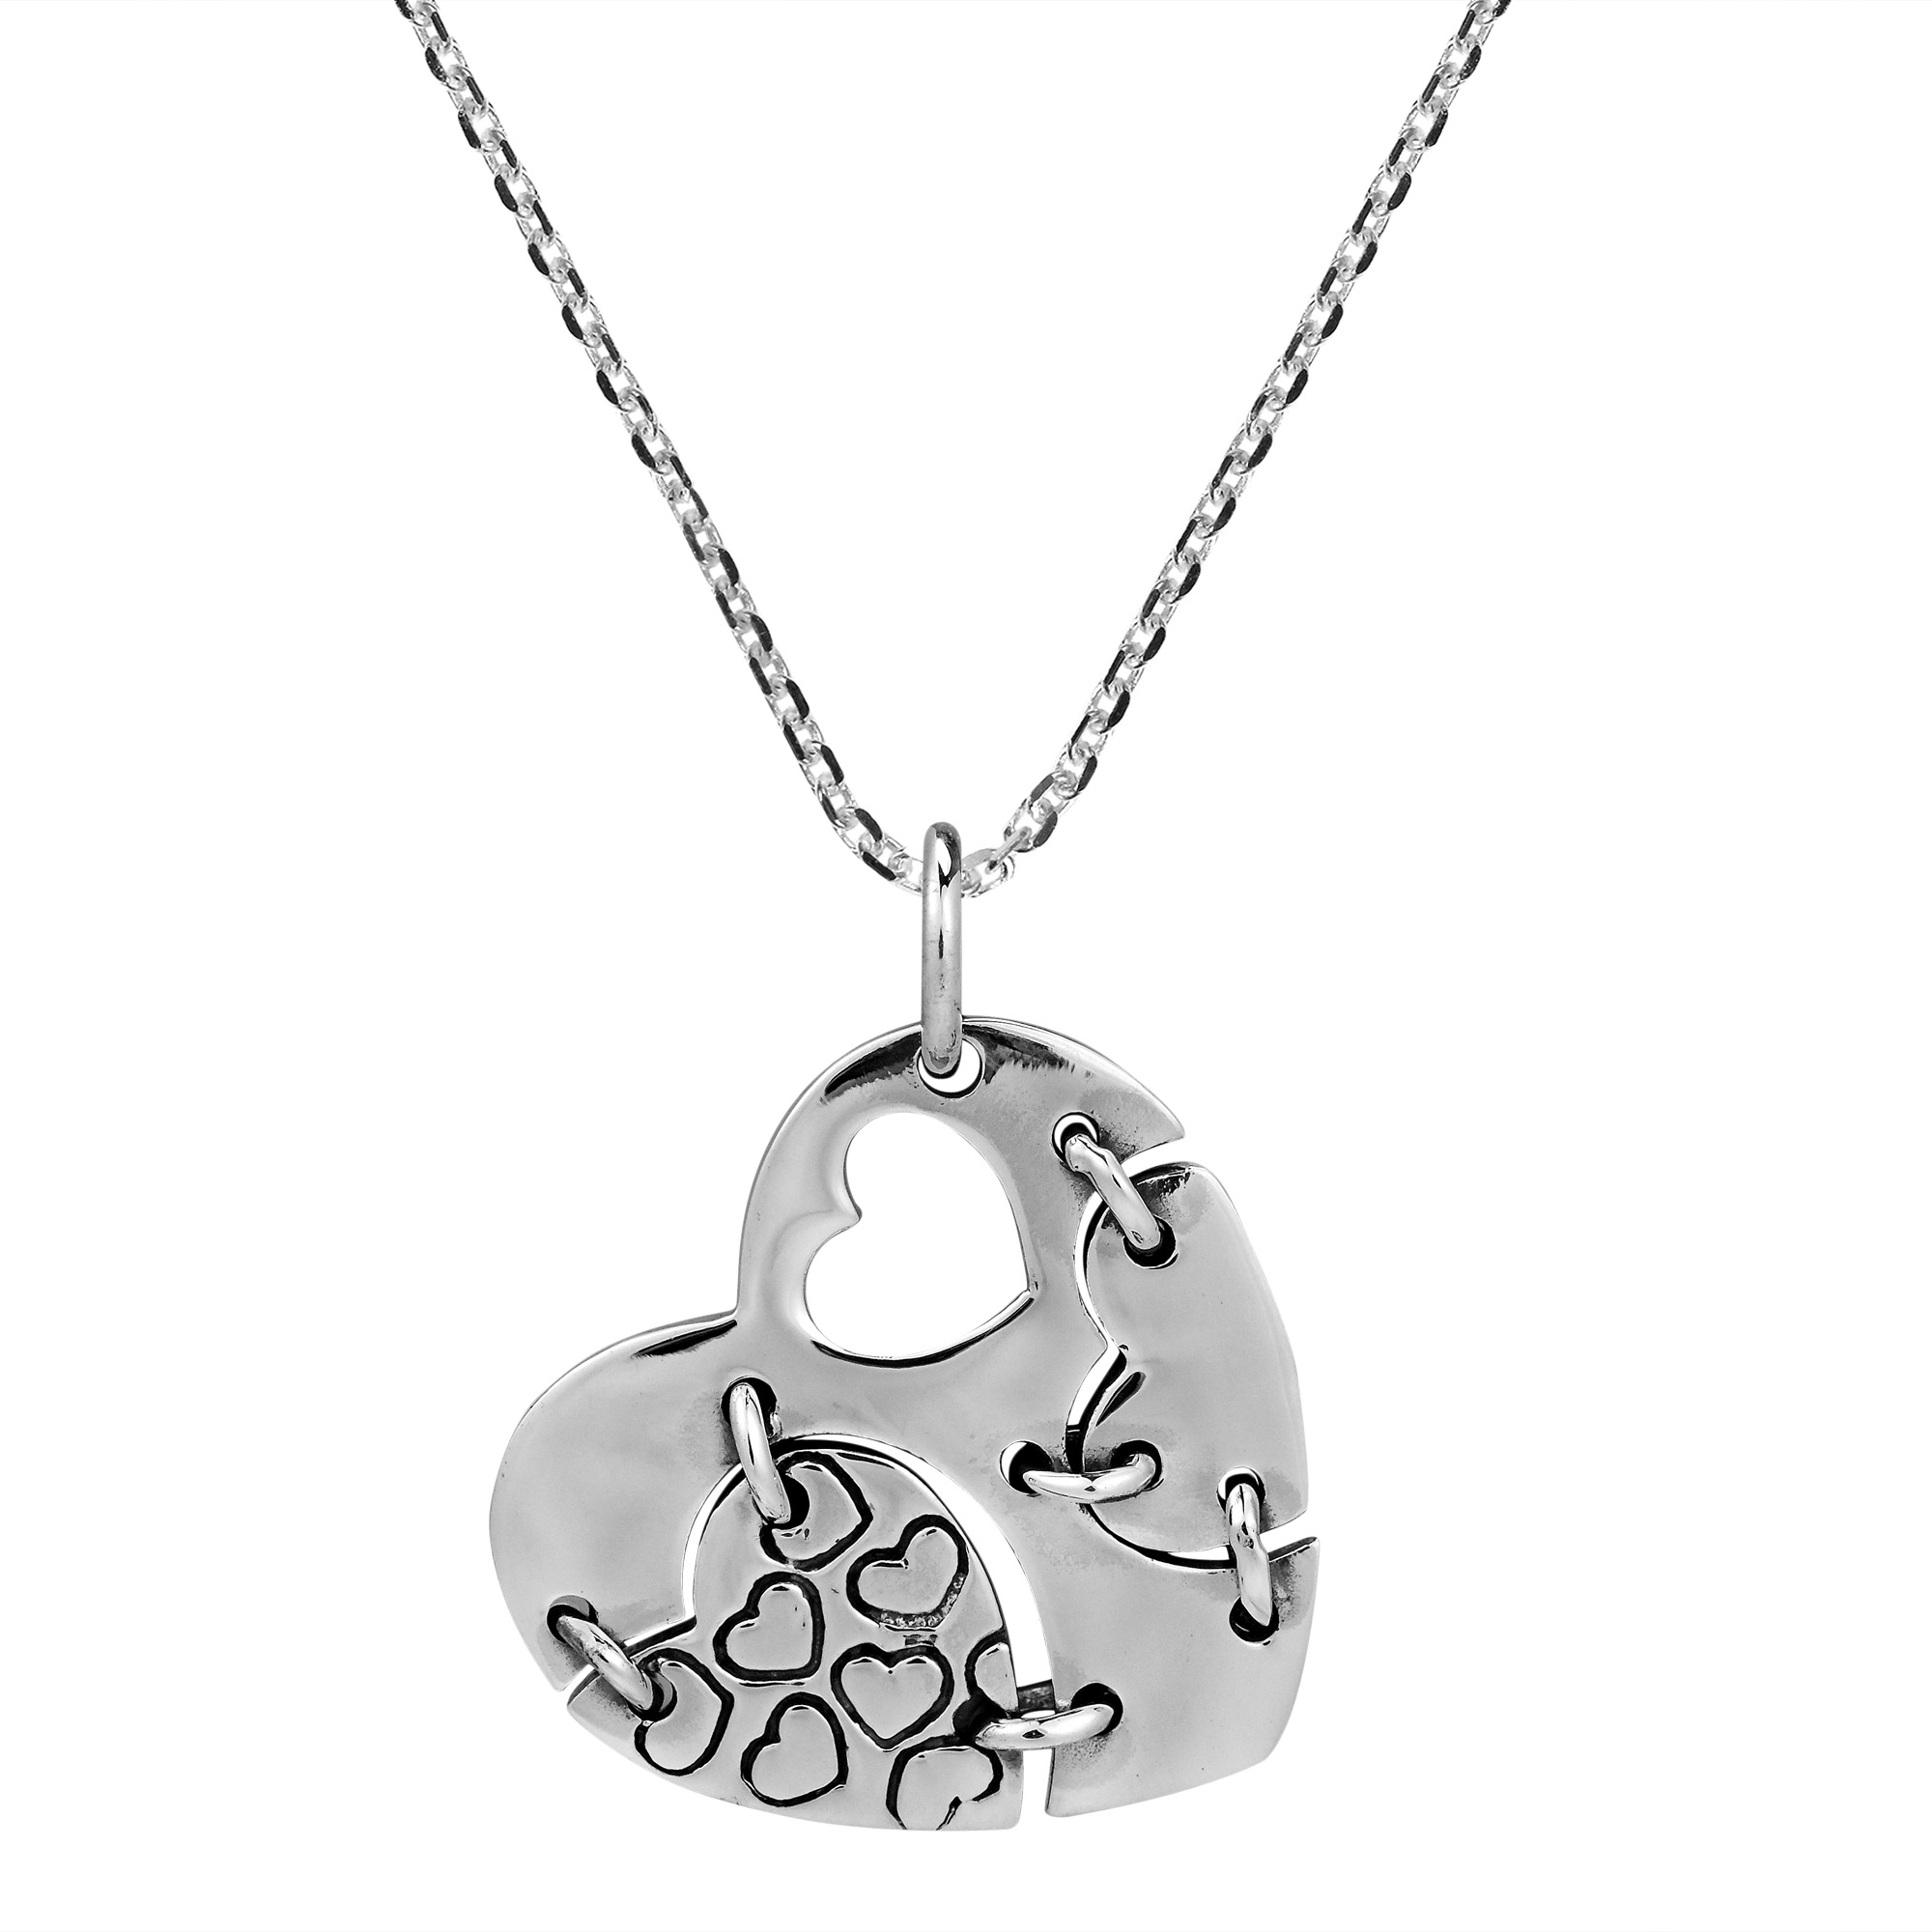 jewelry signature sterling in gallery necklace pendant lyst heart product gucci silver